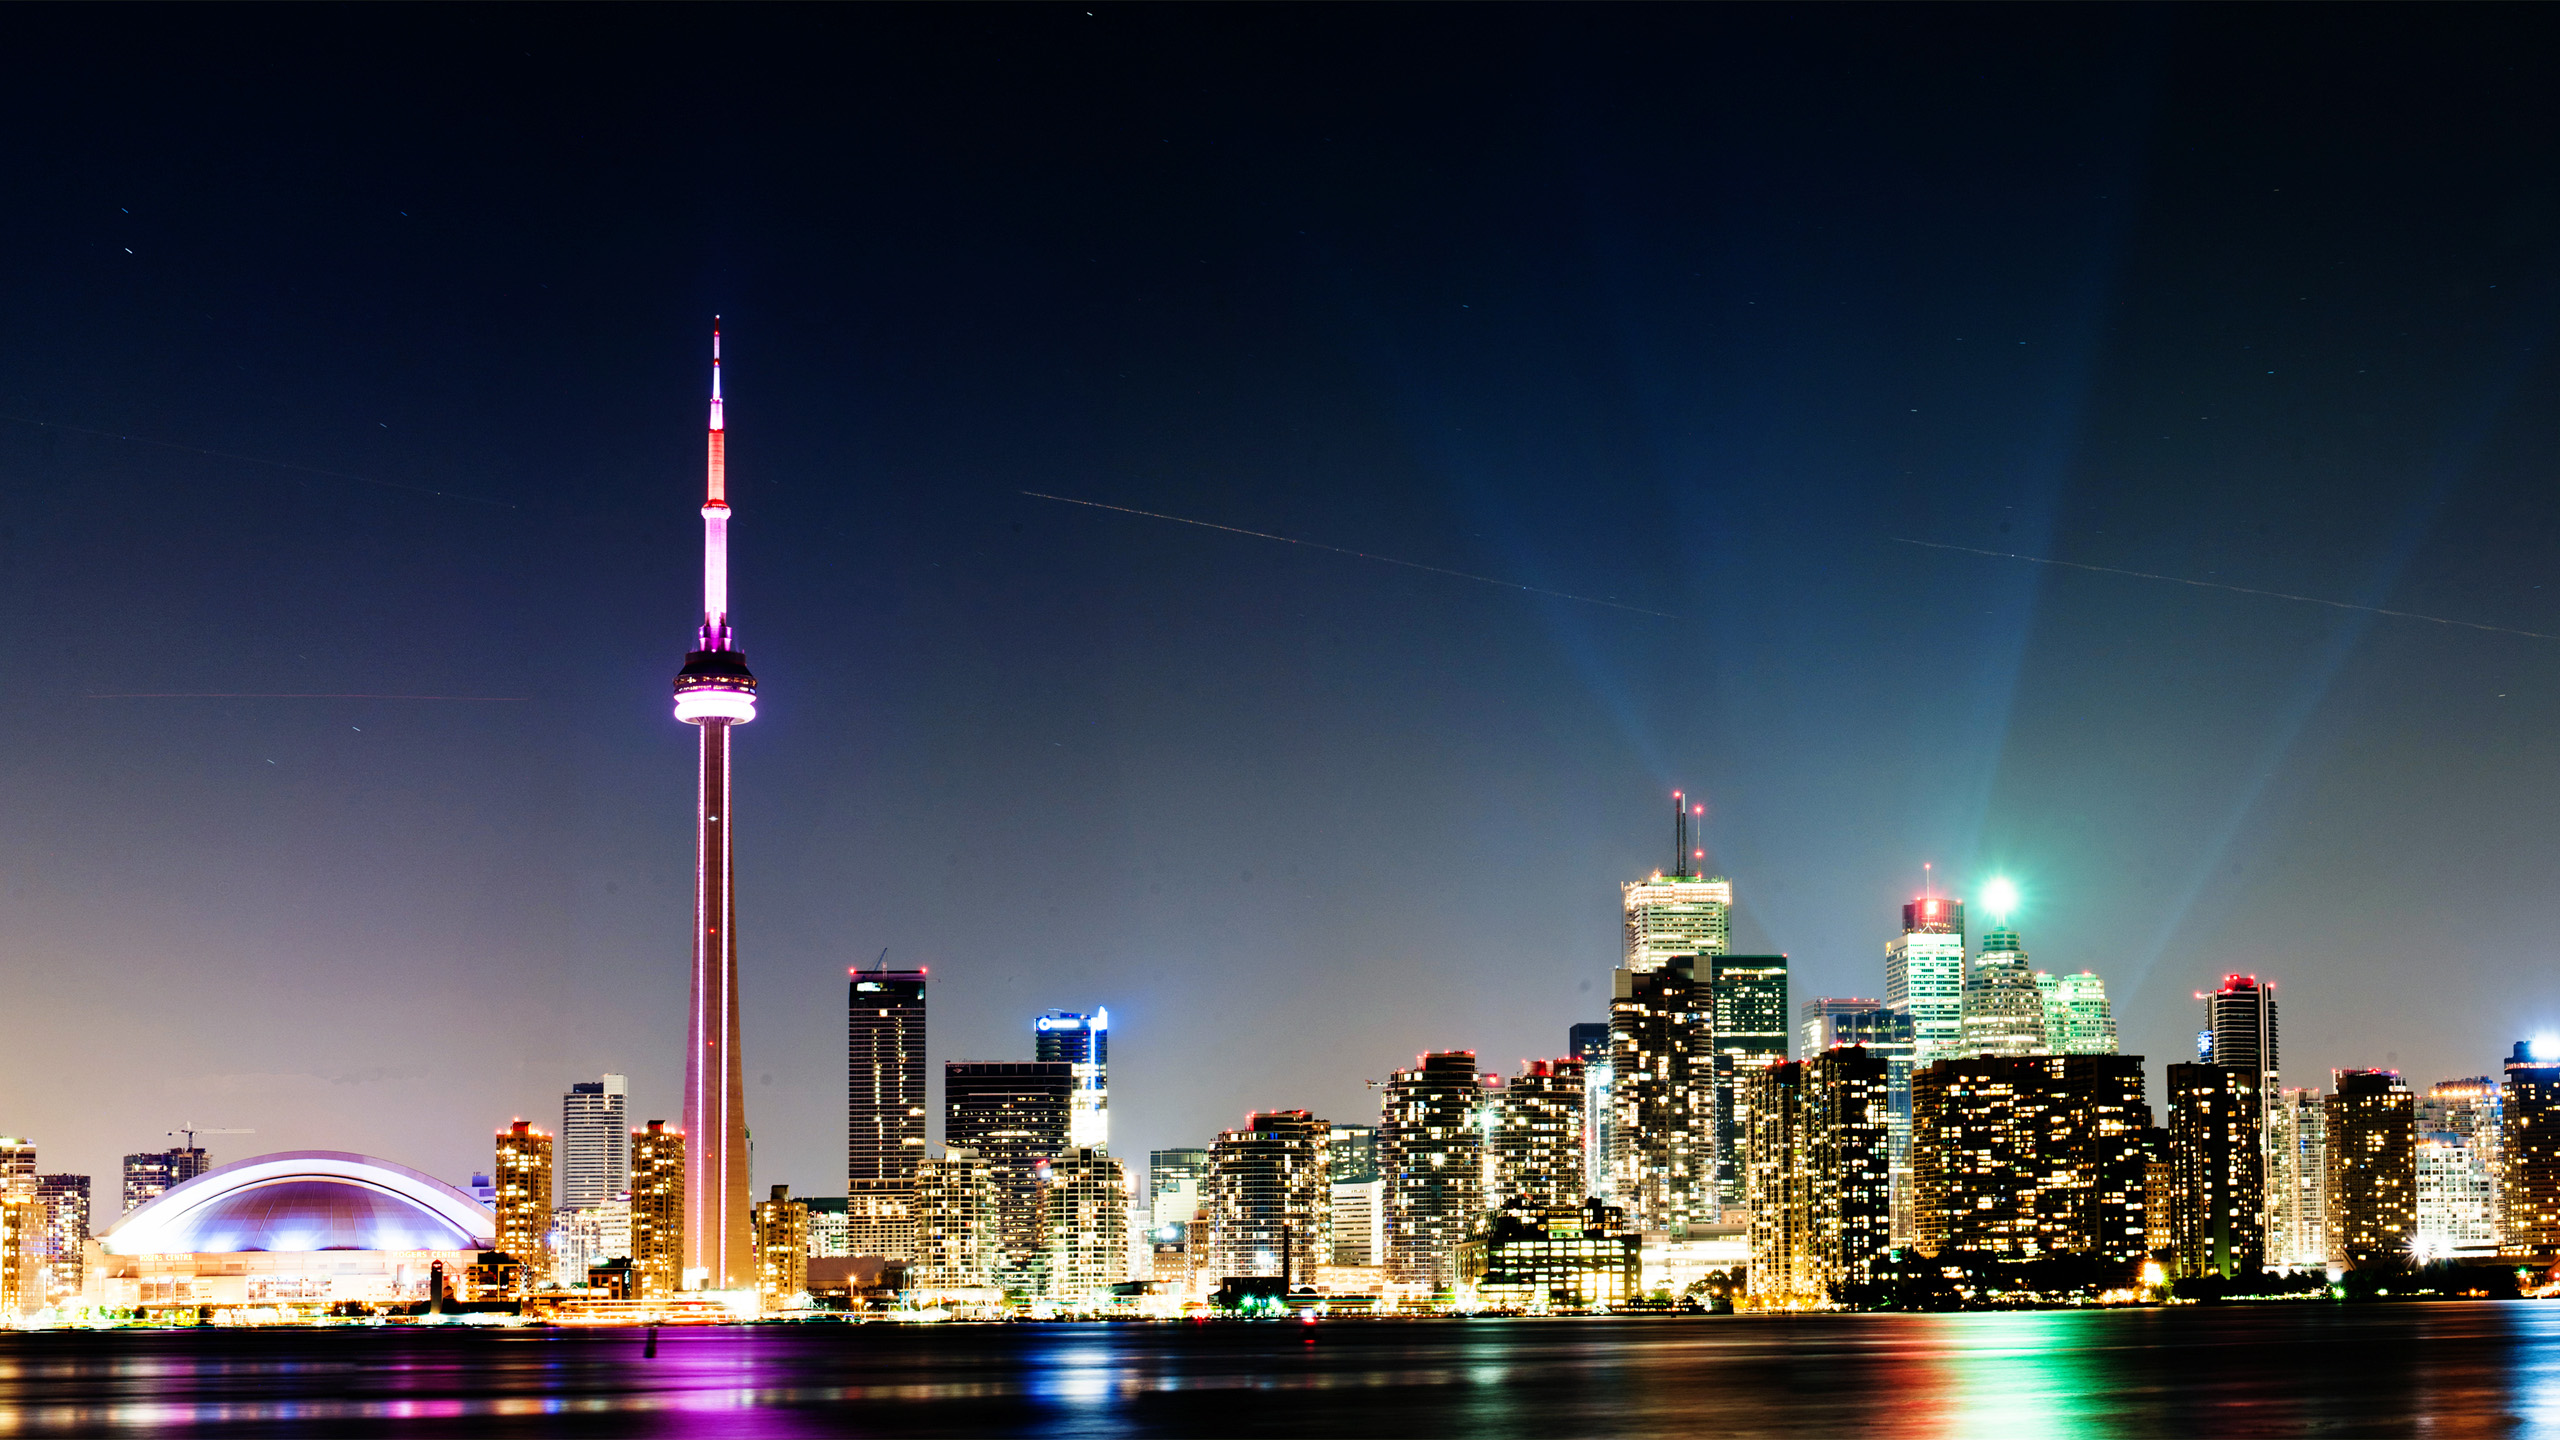 Toronto Nightlife Wallpaper Your Articles 2560x1440